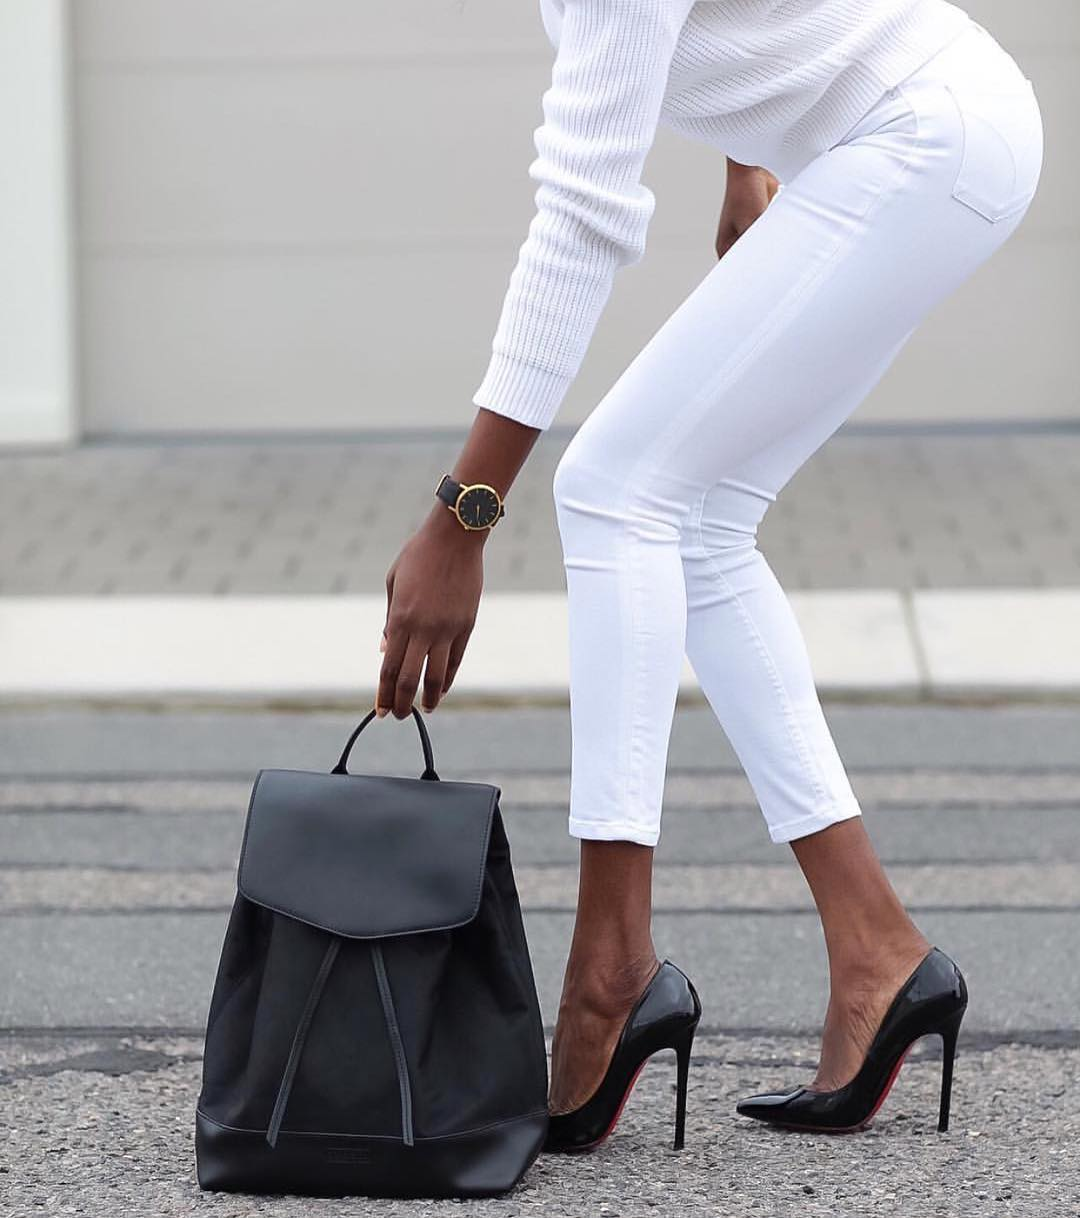 All White Outfit With Black Backpack And Black Heeled Pumps 2021